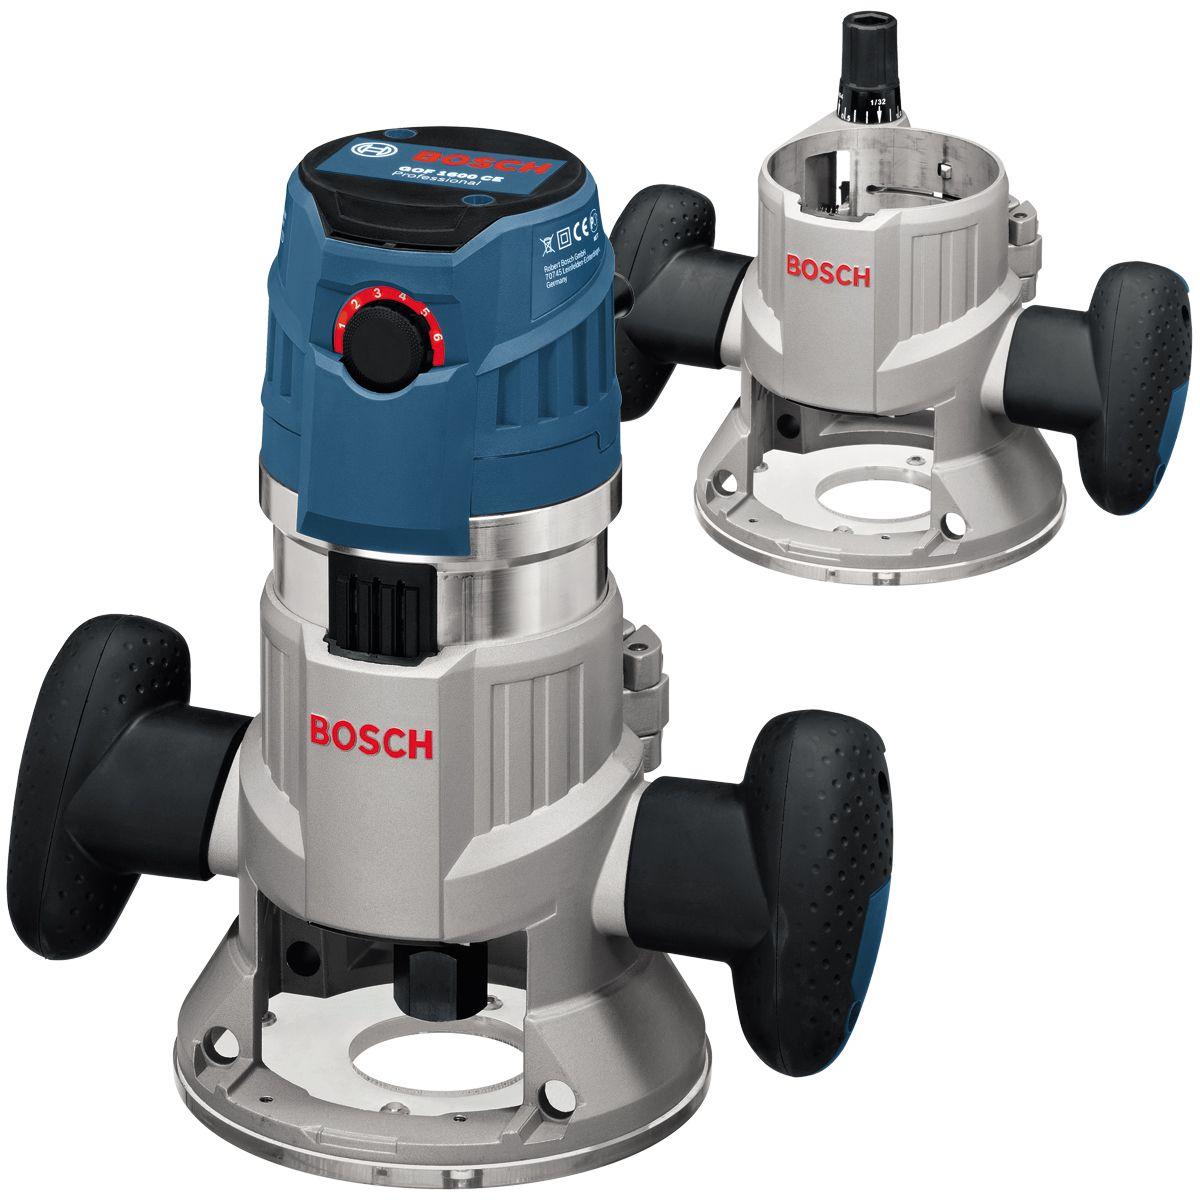 Bosch gmf 1600 ce tools pinterest router table and woodwork bosch gmf 1600 ce greentooth Images